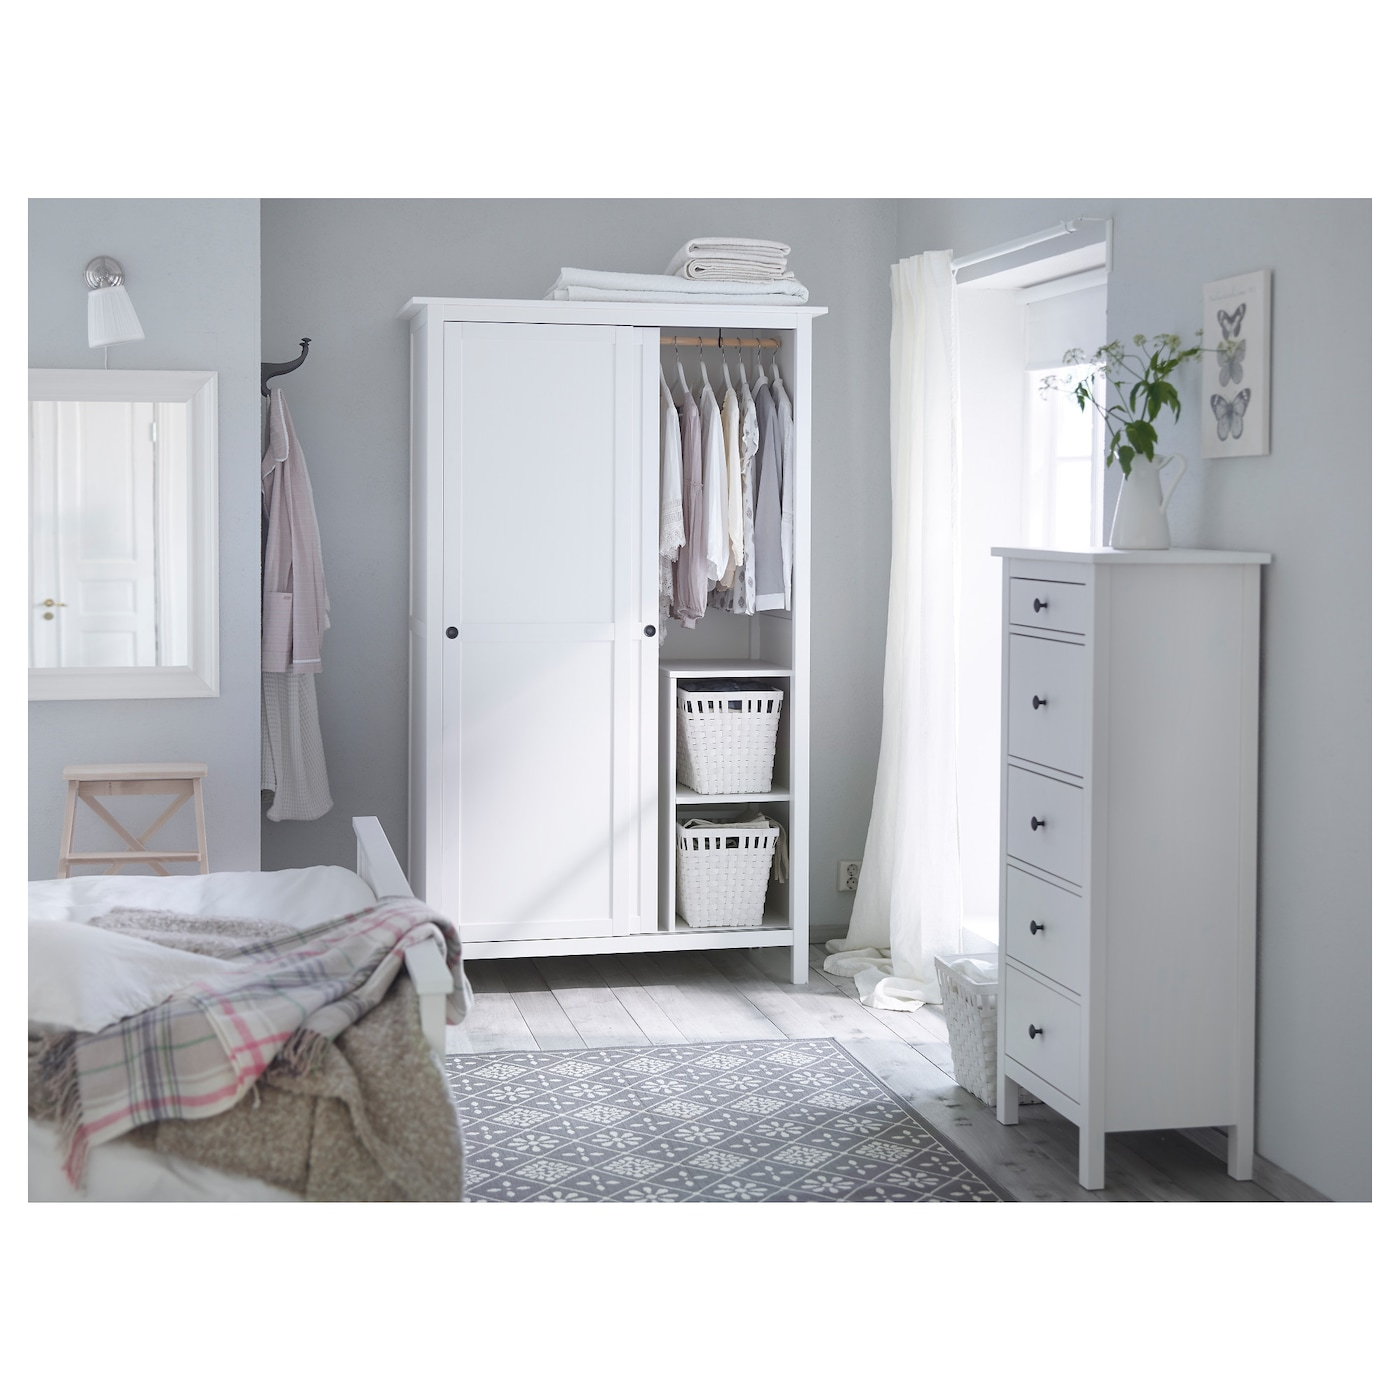 Schlafzimmer ikea hemnes  HEMNES Chest of 5 drawers White stain 58x131 cm - IKEA